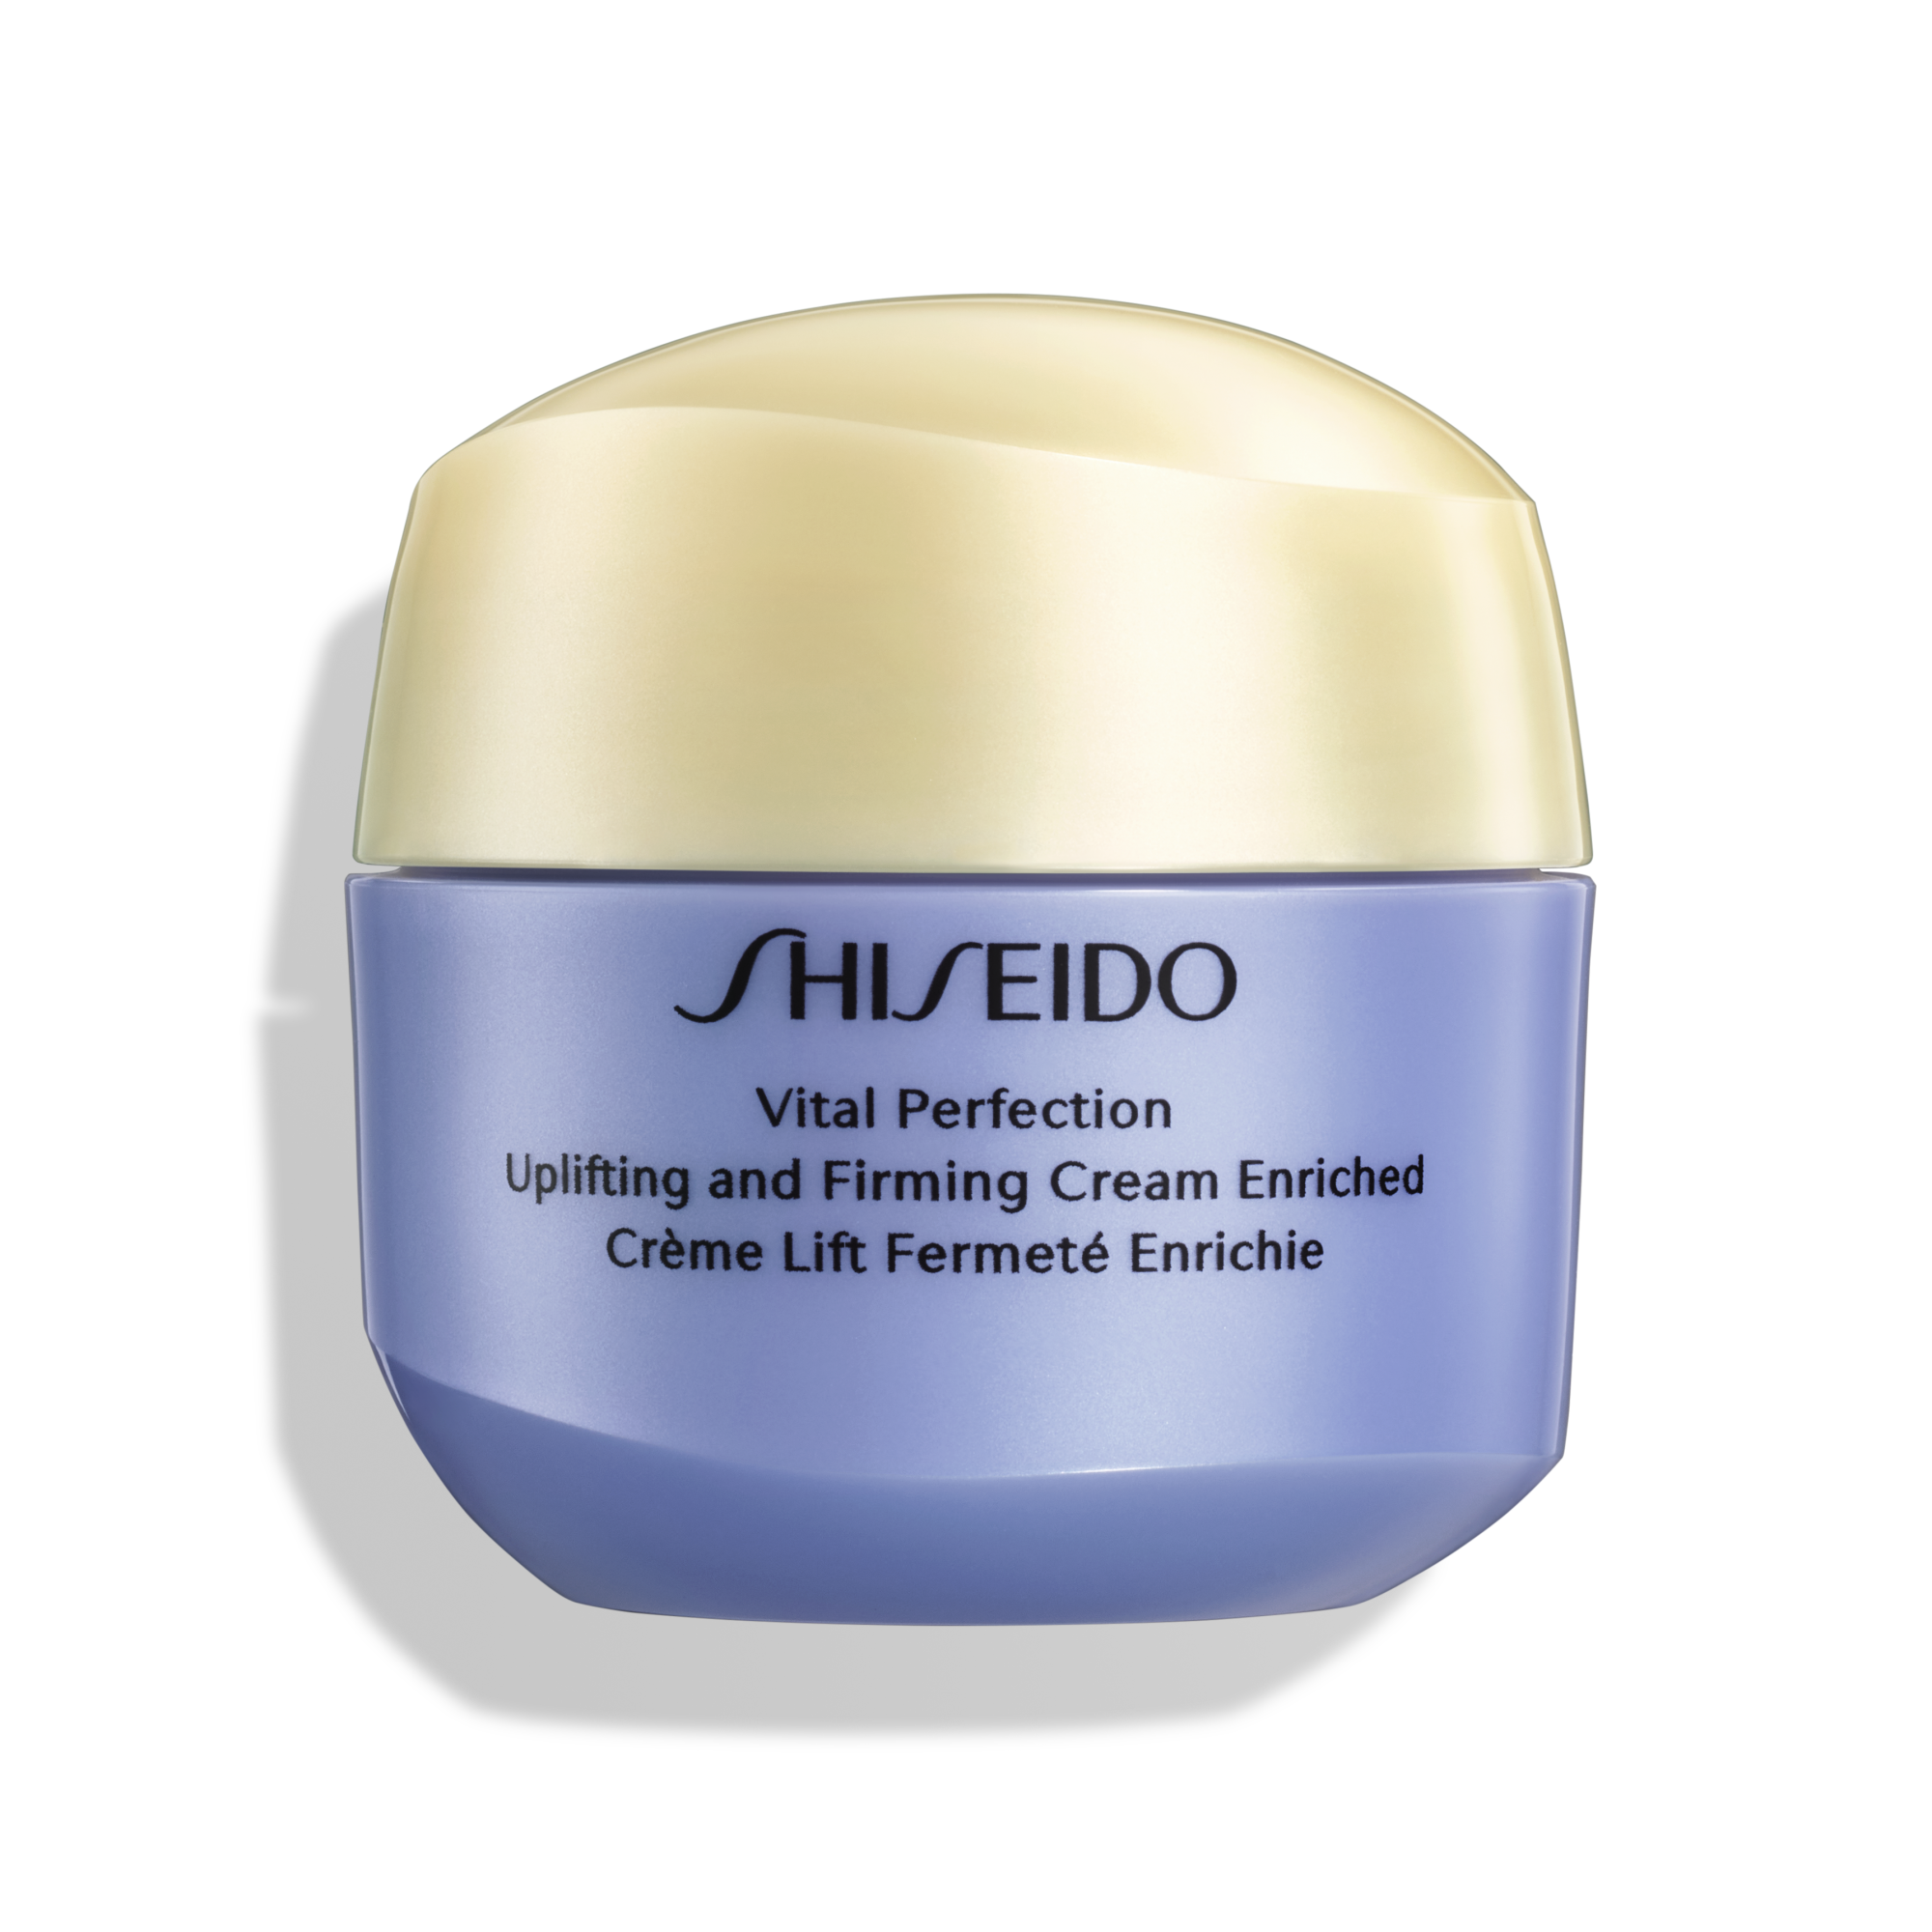 VITAL PERFECTION UPLIFTING AND FIRMING CREAM ENRICHED 20 ML 1